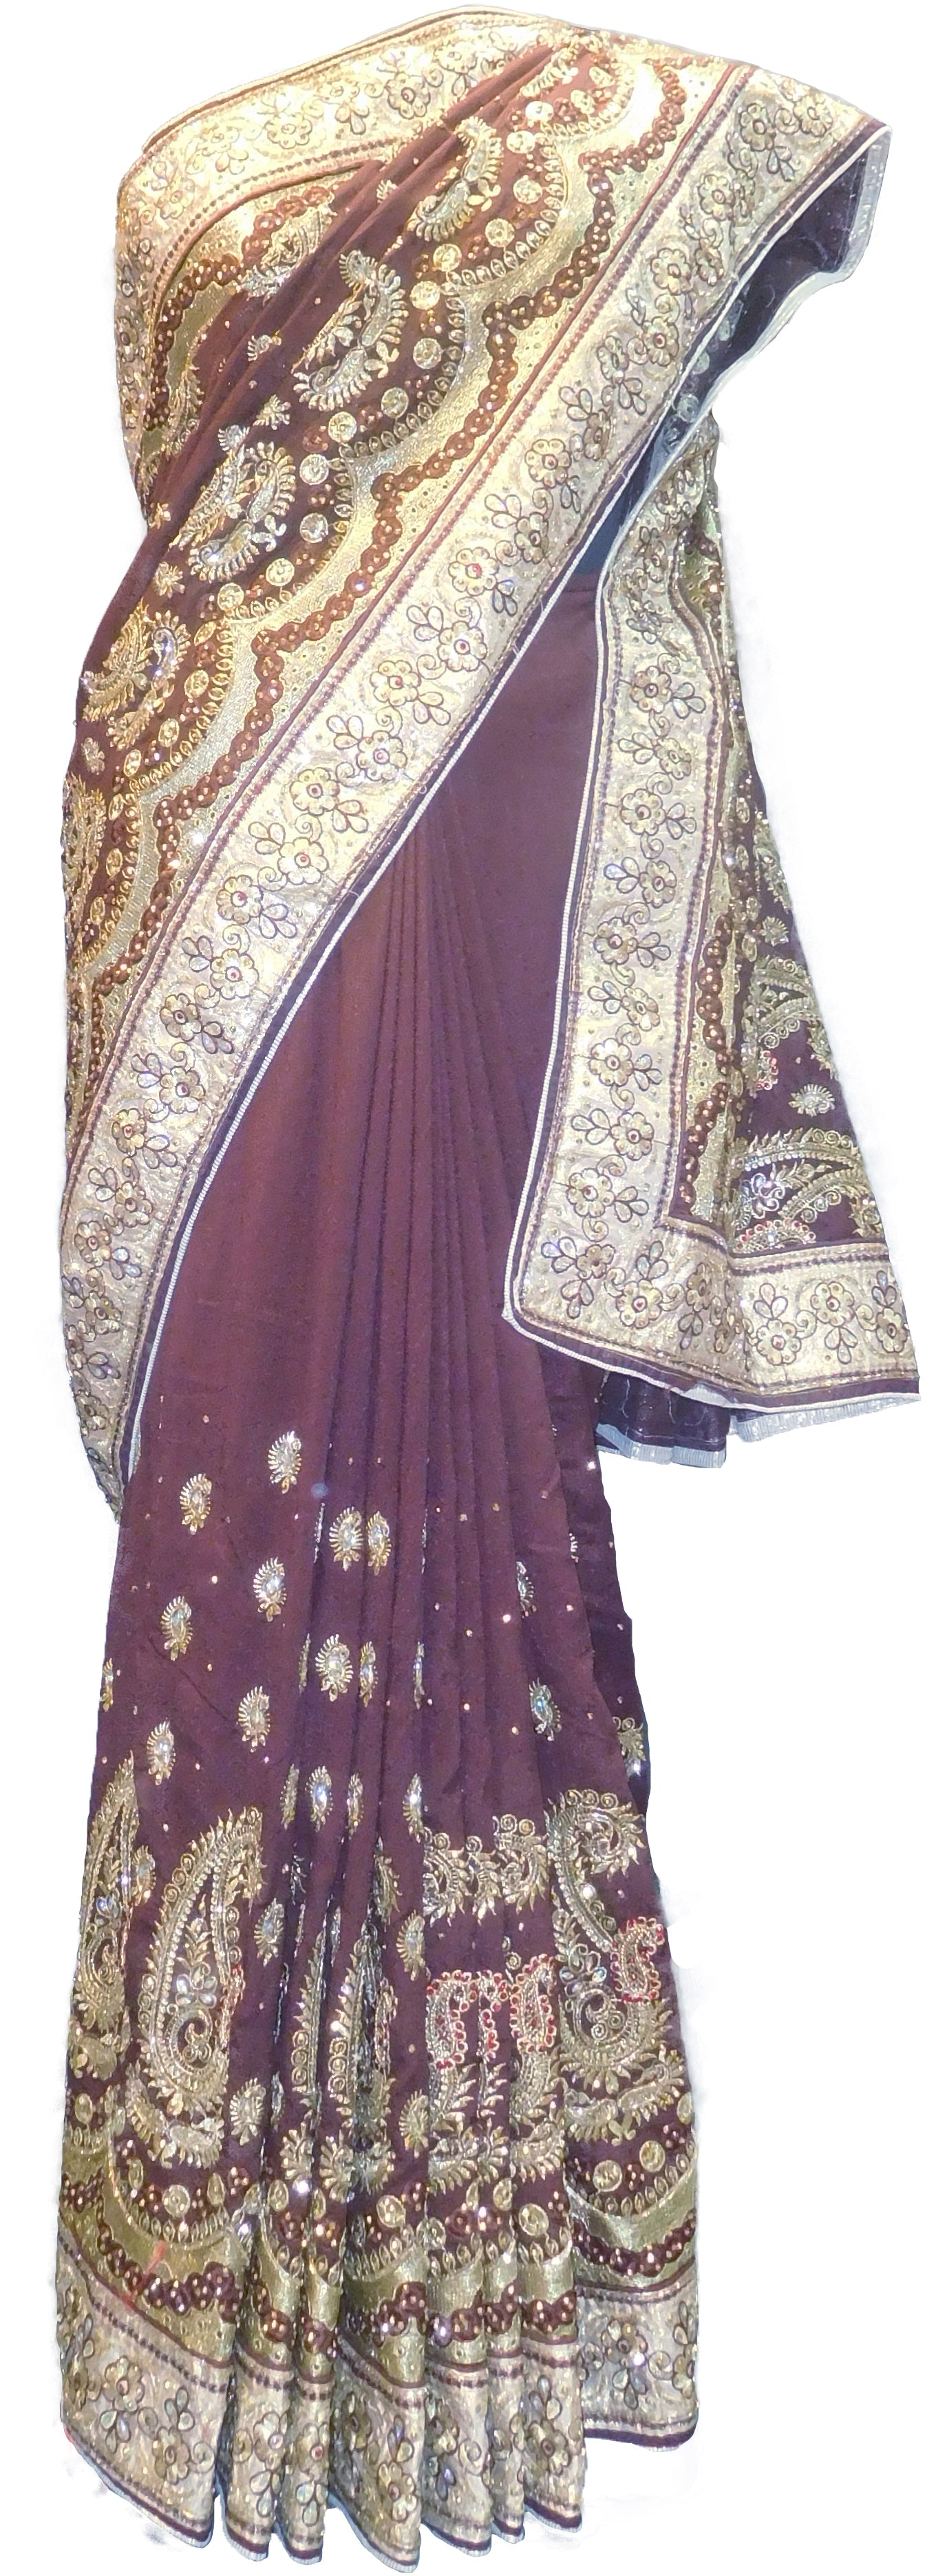 SMSAREE Coffee Brown Designer Wedding Partywear Silk (Vichitra) Zari Cutdana Thread & Stone Hand Embroidery Work Bridal Saree Sari With Blouse Piece F195